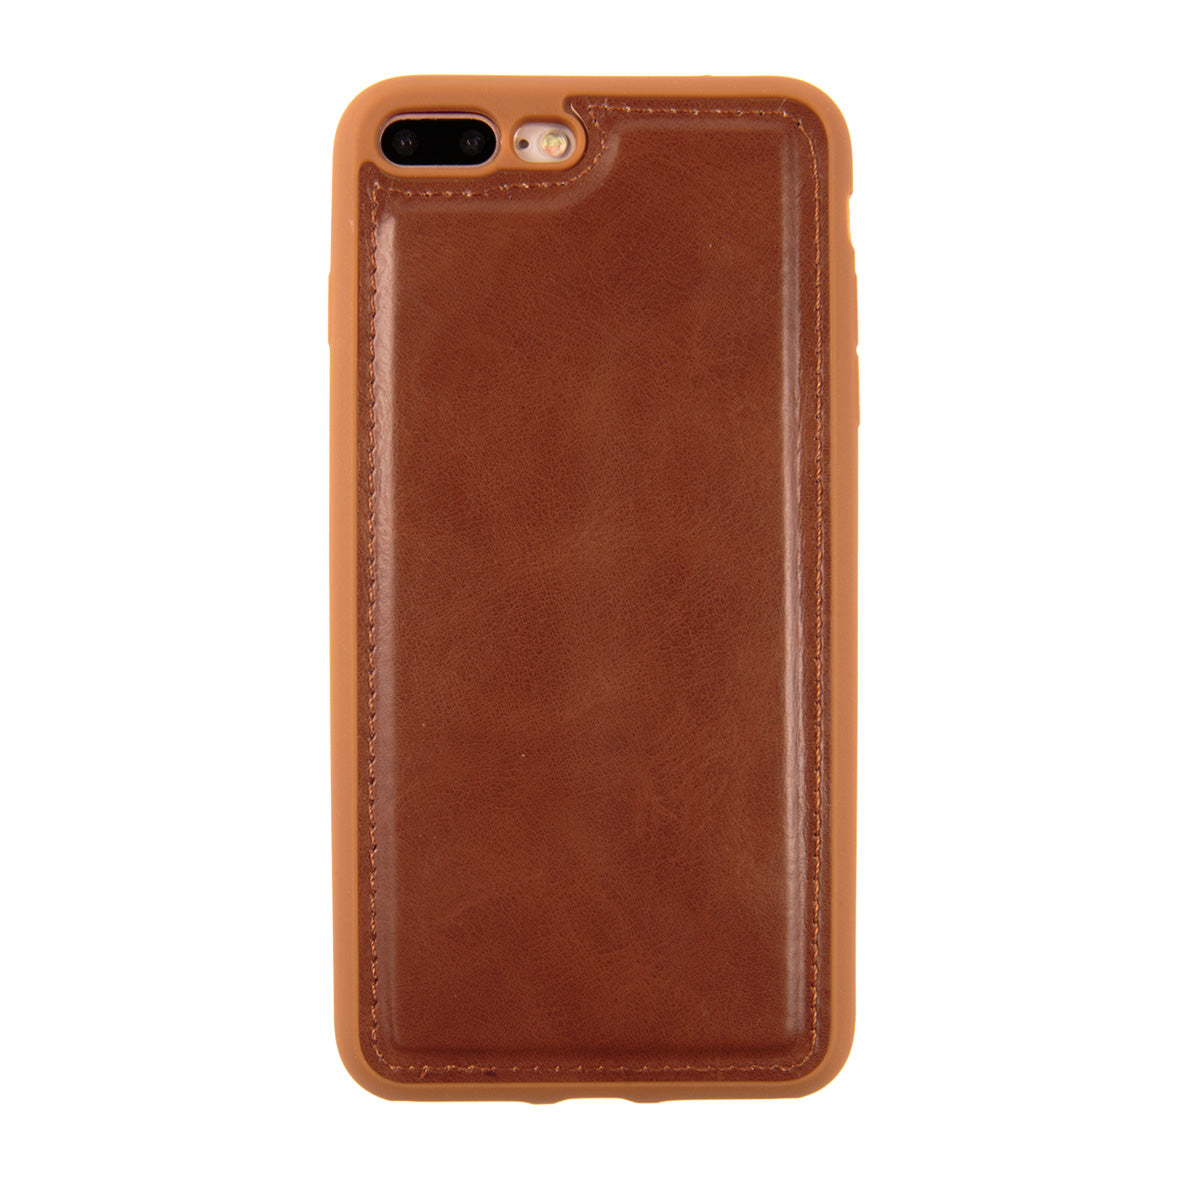 Leather detachable wallet case with card slots iPhone 7+ Plus Case 5.5 inch